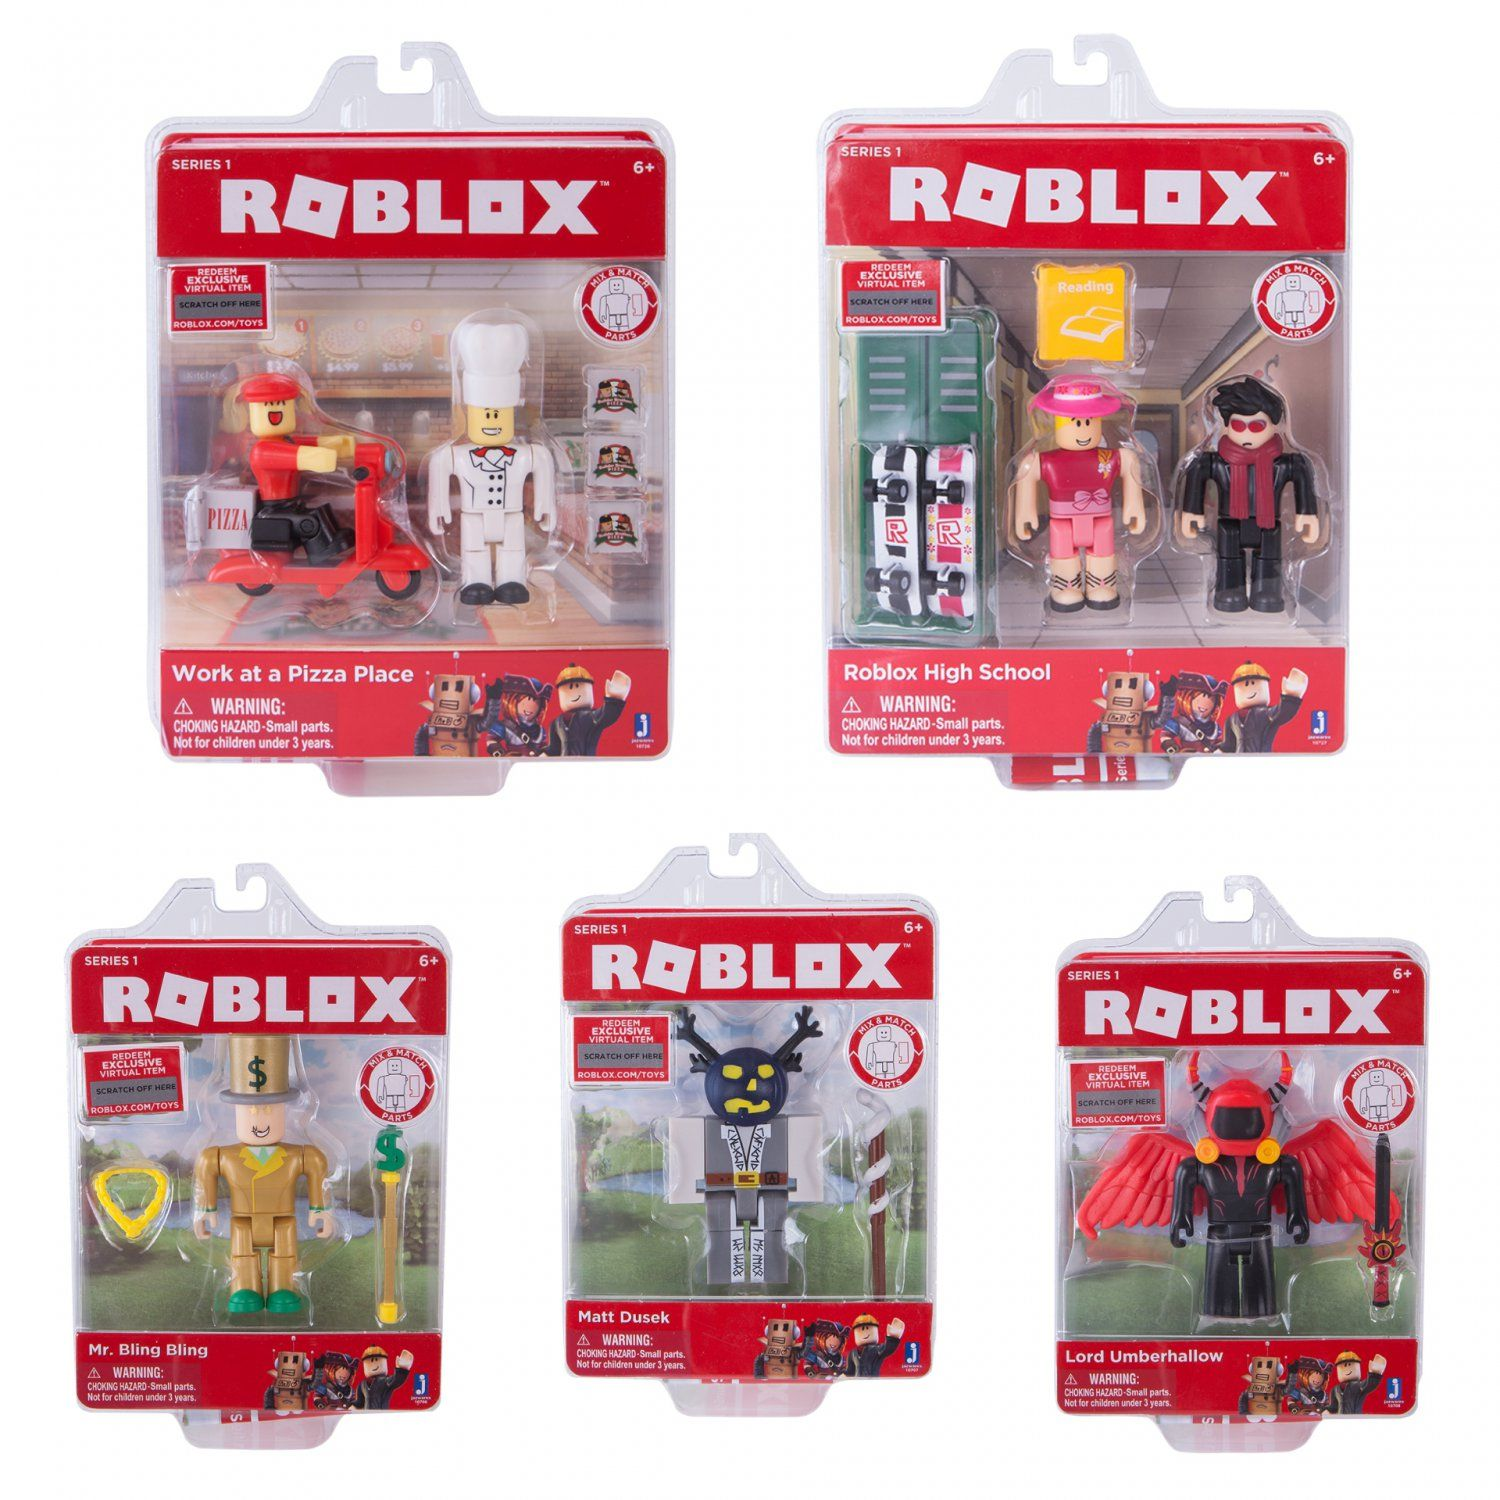 Roblox Champions Of Roblox Figure 6 Creativity Pack Roblox Set Of 5 Roblox Series 1 Core Figure Packs Mr Bling Bling 10706 Matt Dusek 10707 Lord Umberhallow 10708 Game Packs Work Roblox Pizza Place Packing